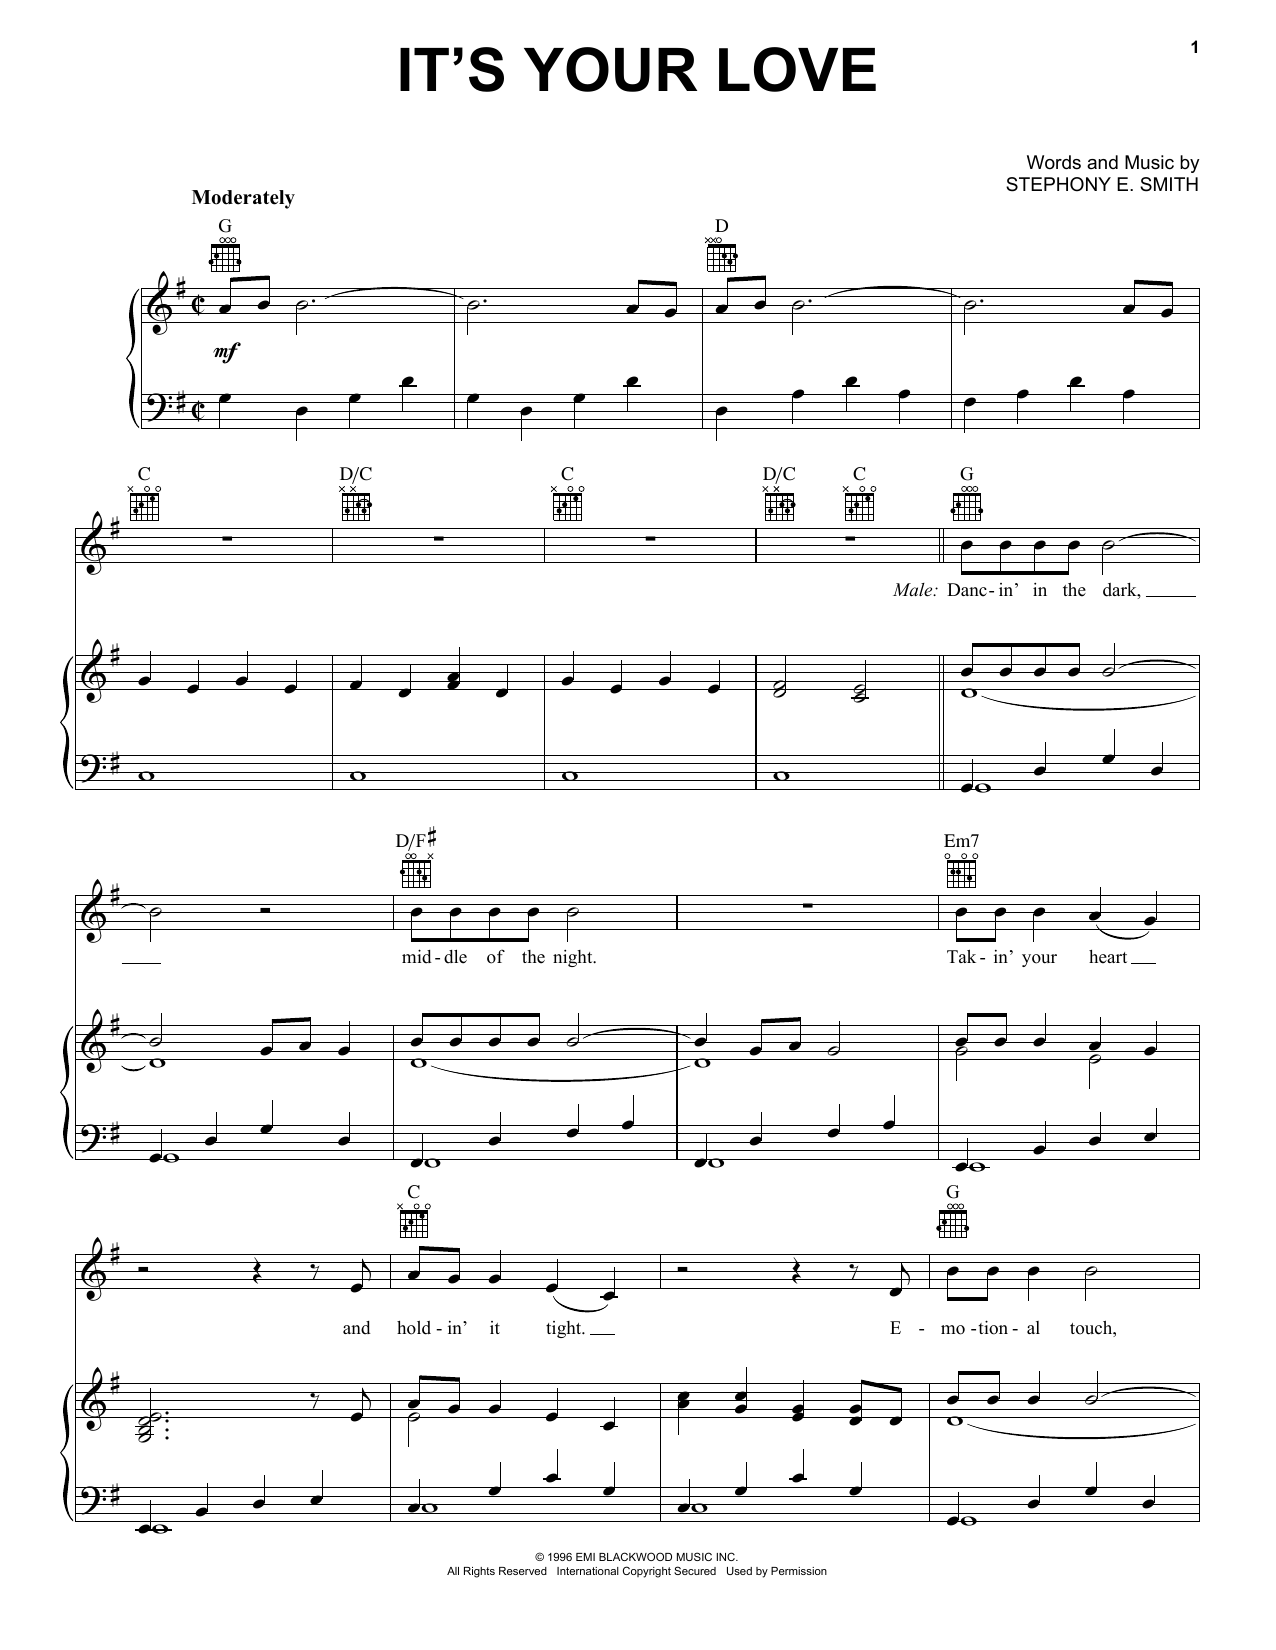 Tim McGraw with Faith Hill It's Your Love Sheet Music, Notes & Chords